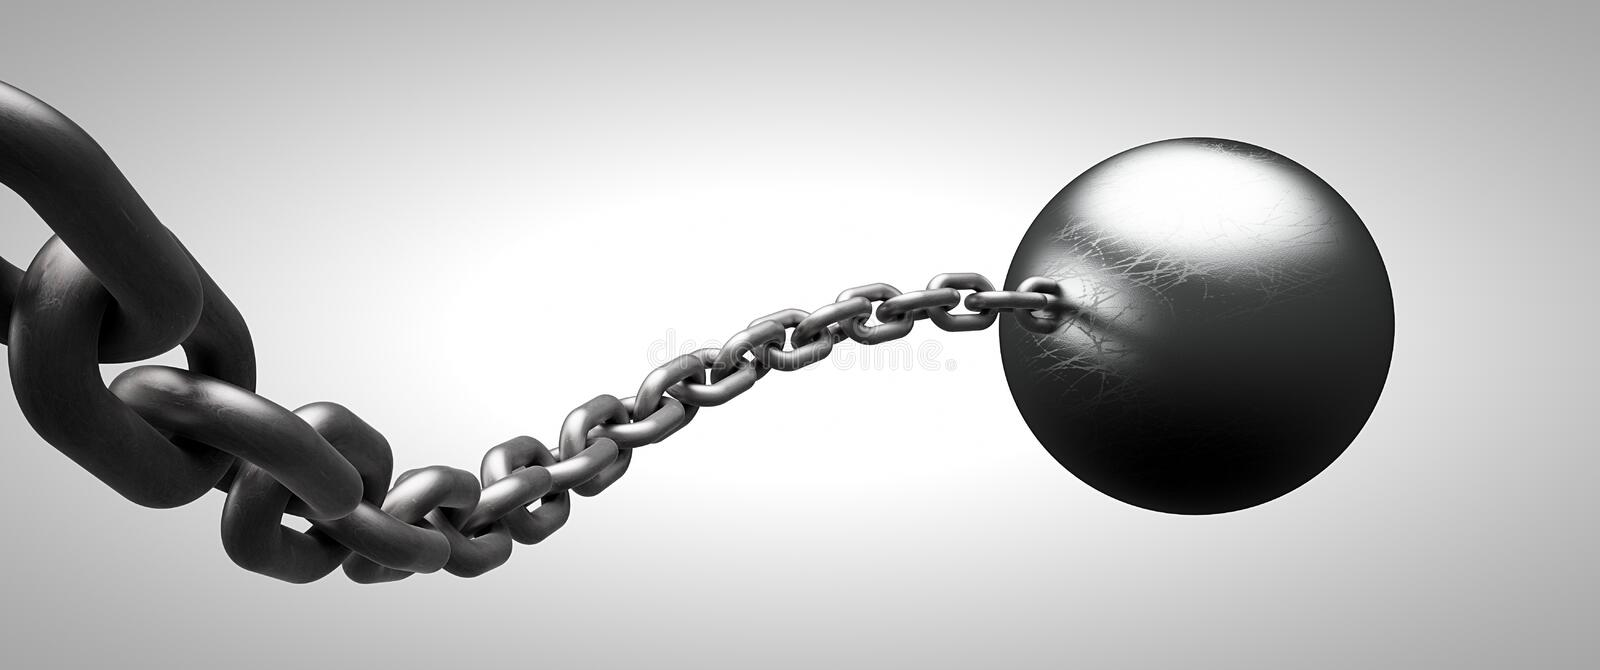 Ball and chain stock images